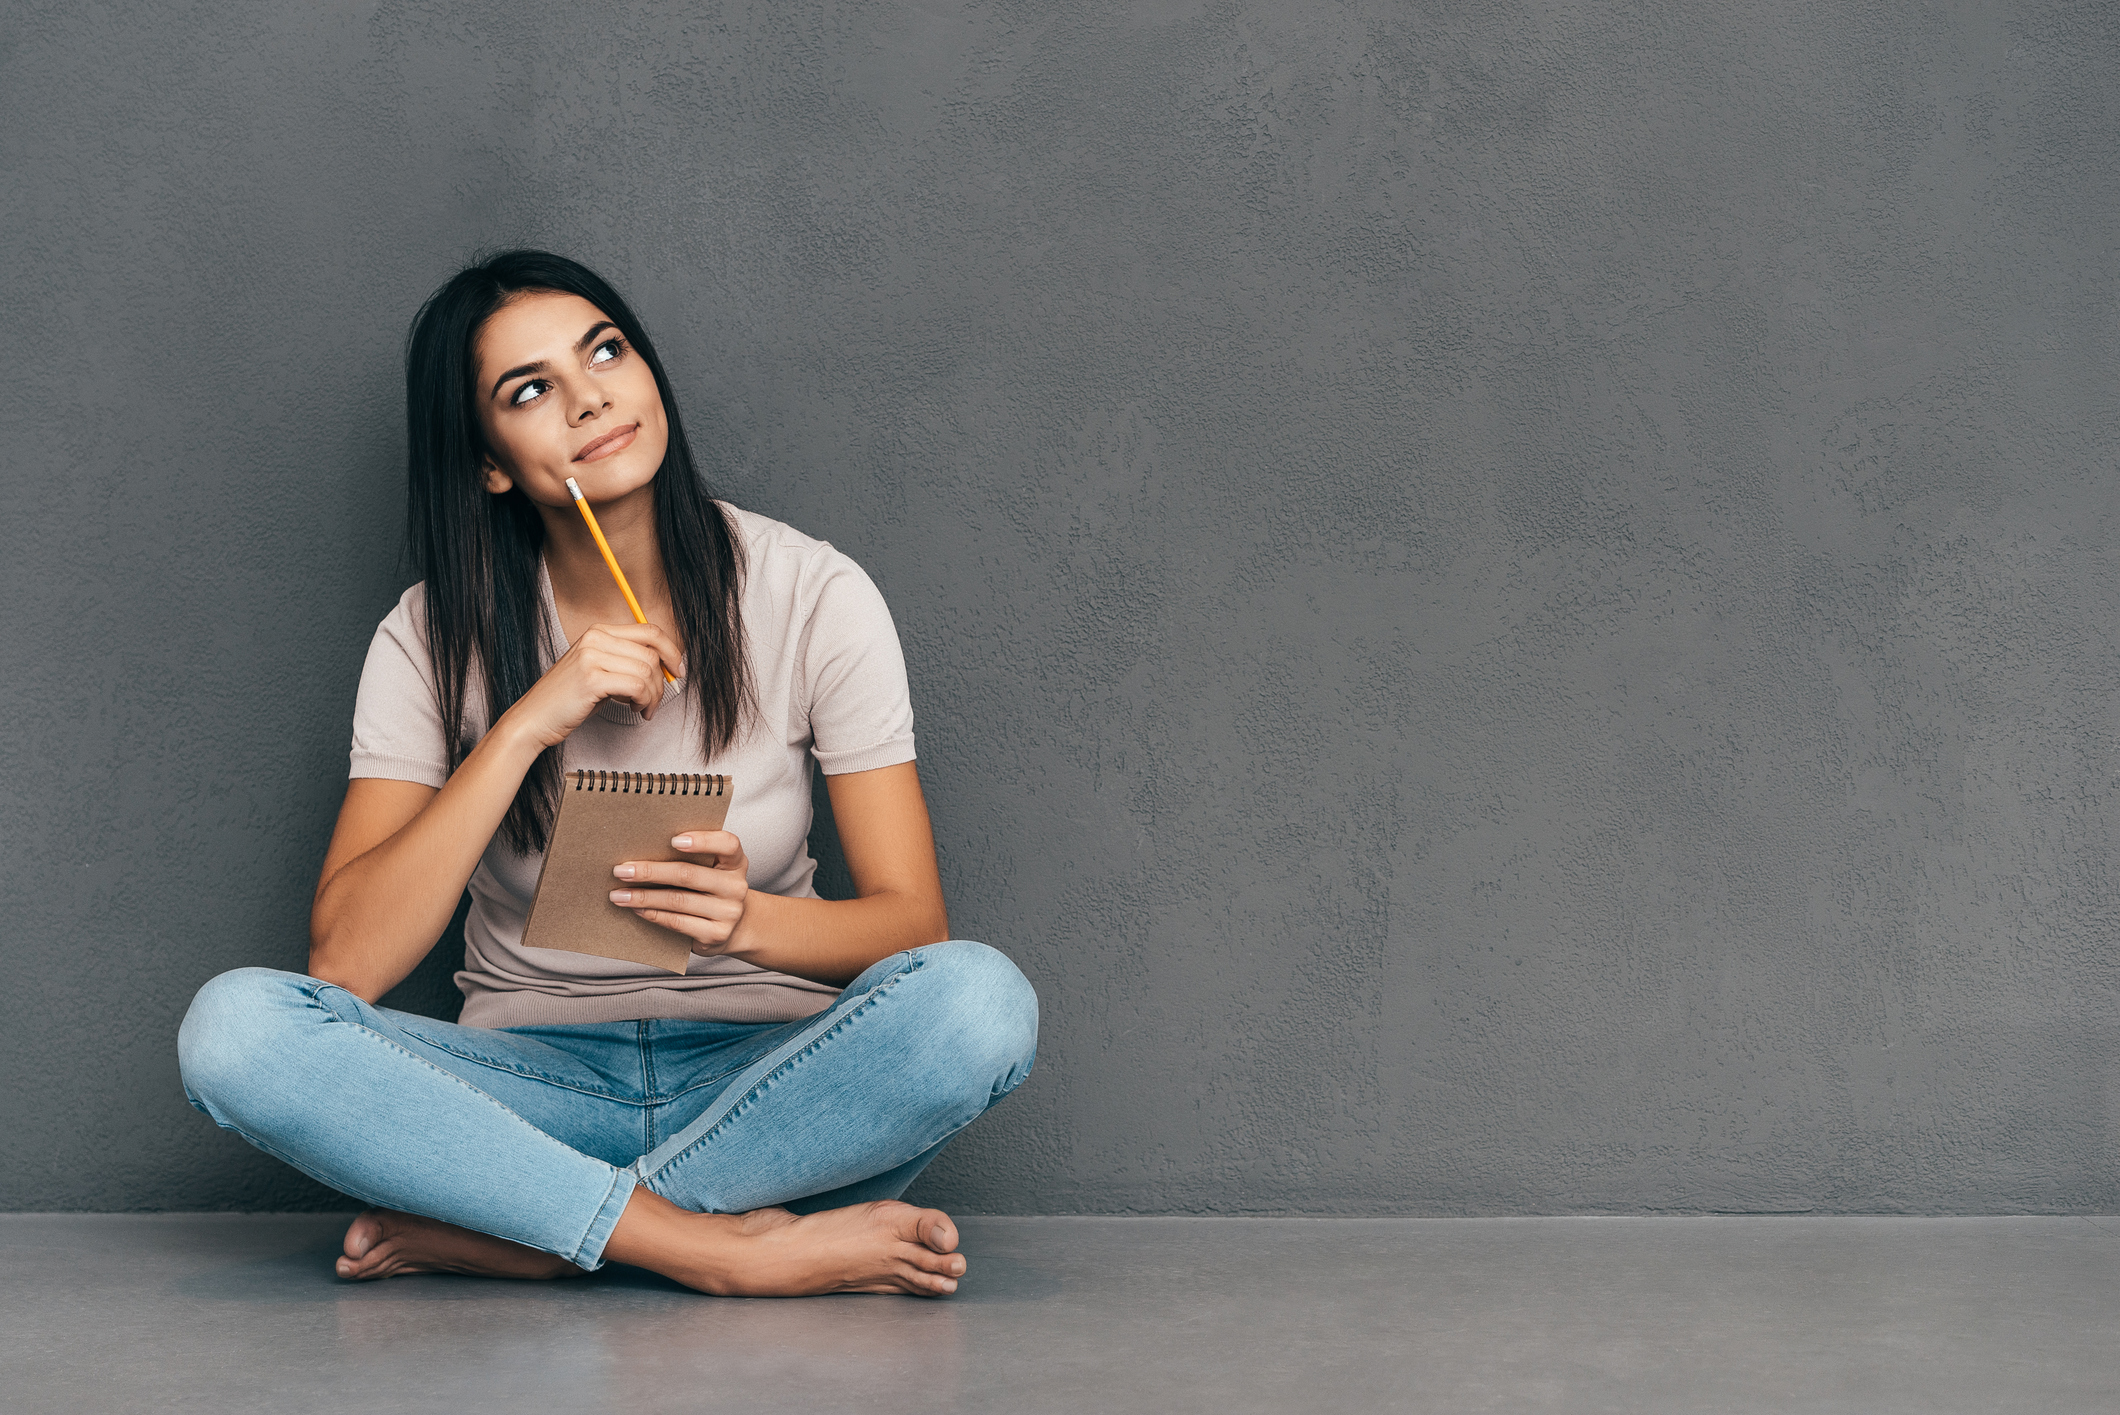 Attractive young woman in casual wear holding notebook and pen while sitting barefoot and against grey background (Thinkstock/PA)